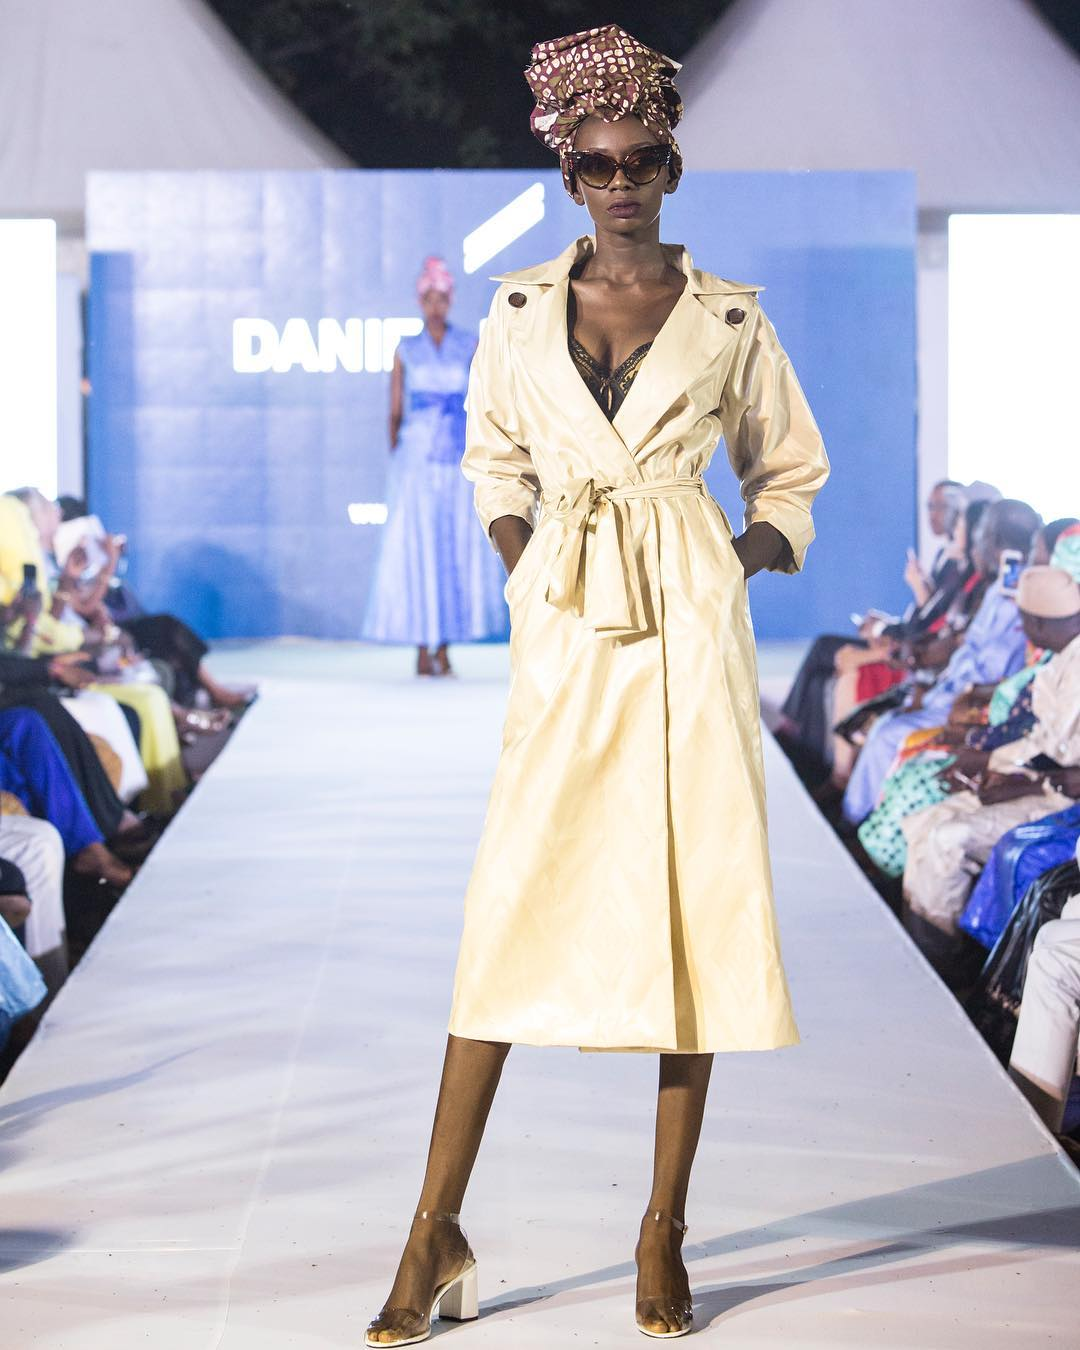 AFRICAN FASHION STYLE MAGAZINE - WE WAX THE WORLD Tour 2 BY DANIEL HECHtTER A COLLABORATION WITH ADAMA PARIS -ADAMA PARIS FASHION EVENTS POWER BY SOMEX - BAMAKO MALI - Media Partner DN MAG, DN AFRICA -STUDIO 24 NIGERIA - STUDIO 24 INTERNATIONAL